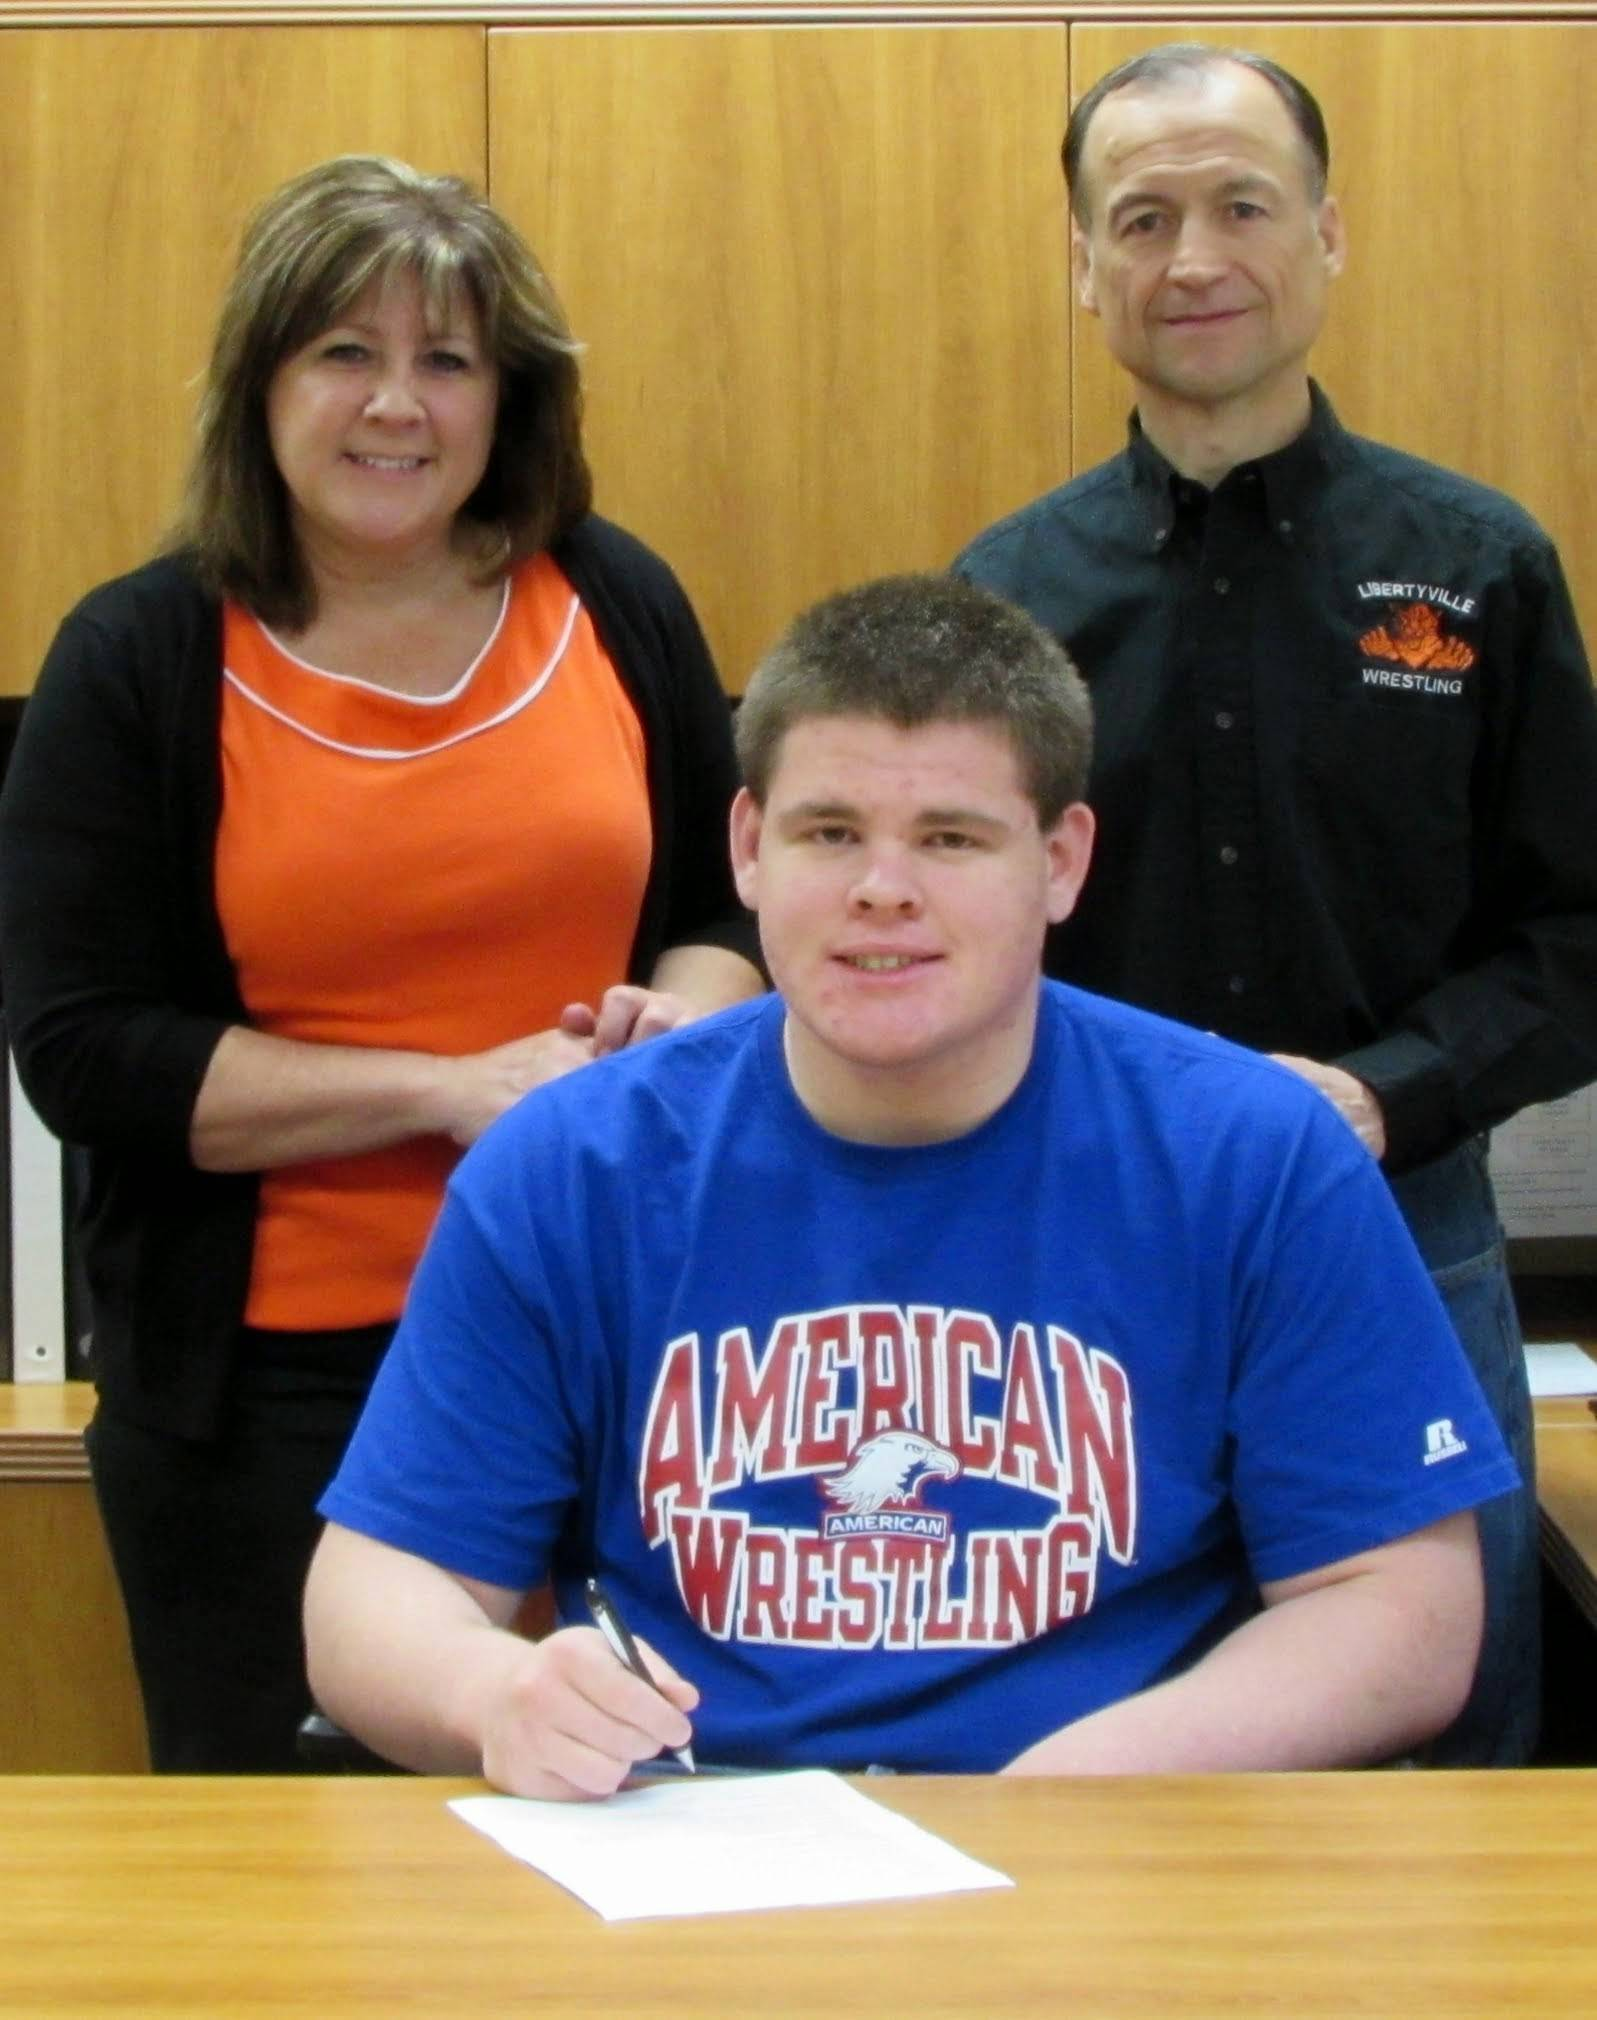 Libertyville's Chris McDermand has committed to wrestle at American University.